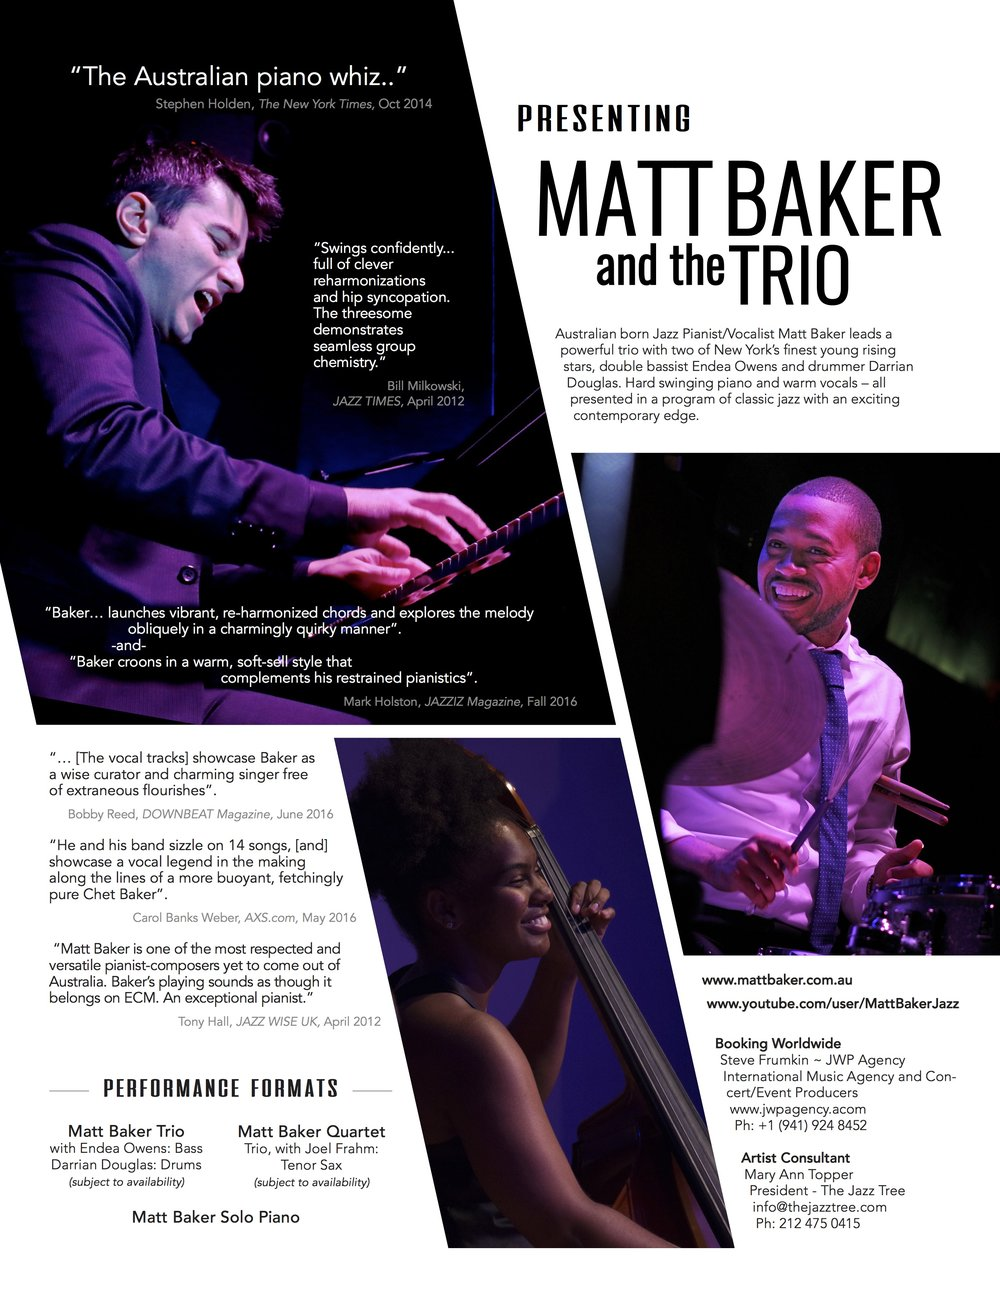 MATT BAKER AND THE TRIO - ONE SHEET